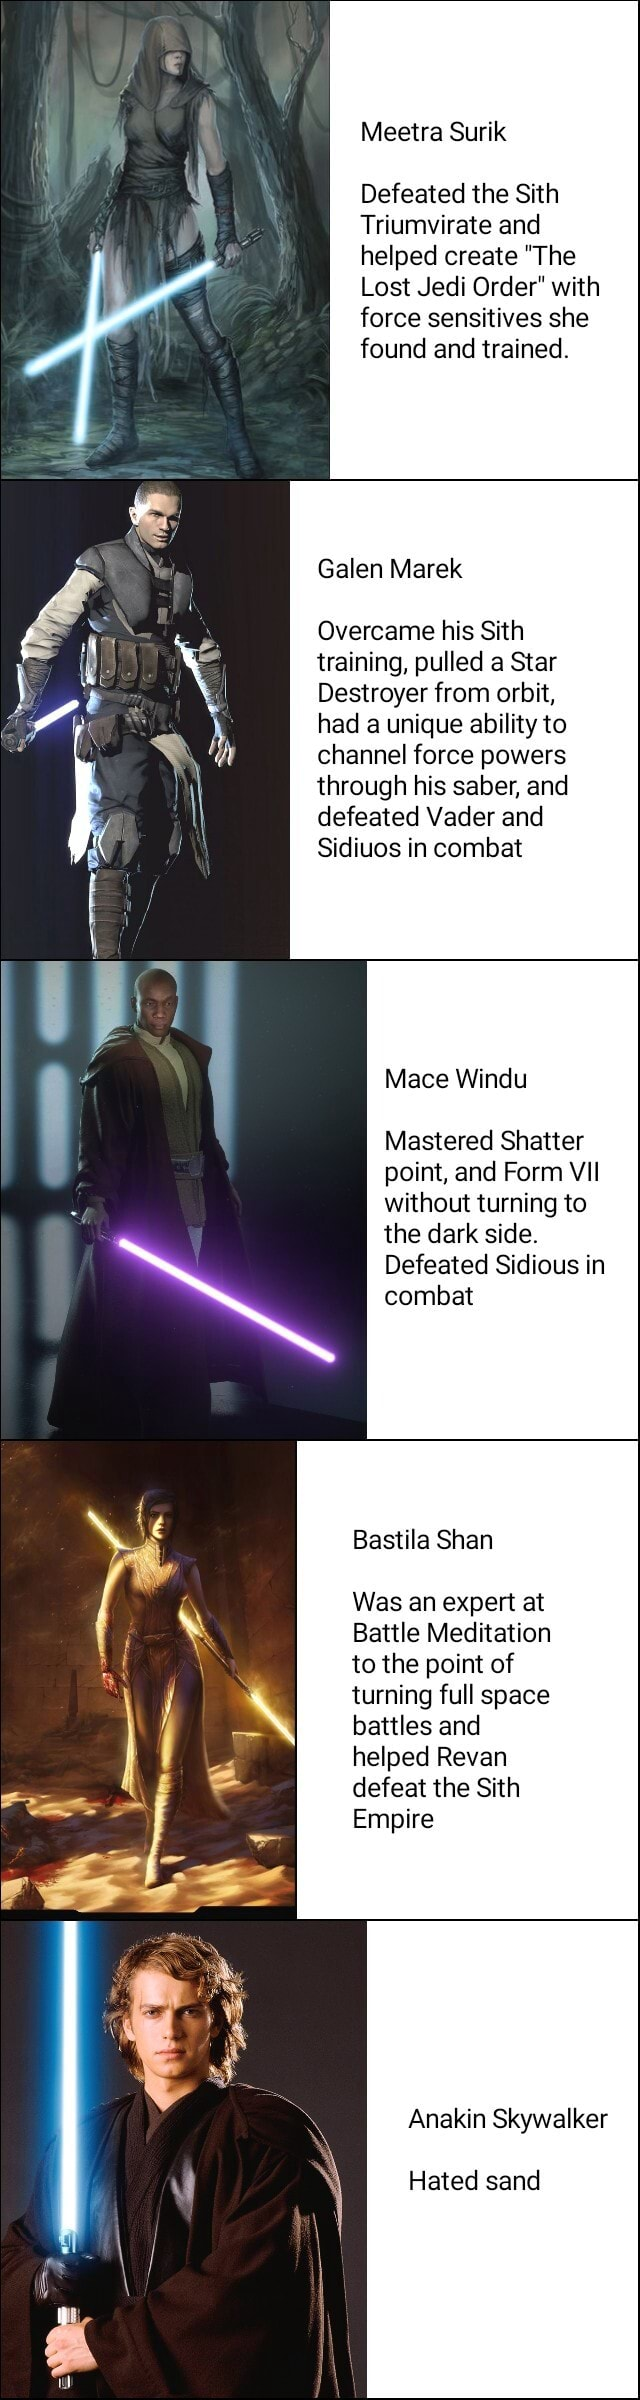 Meetra Surik Defeated the Sith Triumvirate and helped create The Lost Jedi Order with force sensitives she found and trained. Galen Marek Overcame his Sith training, pulled a Star Destroyer from orbit, had a unique ability to channel force powers through his saber, and defeated Vader and Sidiuos in combat Mace Windu Mastered Shatter point, and Form VII without turning to the dark side. Defeated Sidious in combat Bastila Shan Was an expert at Battle Meditation to the point of turning full space battles and helped Revan defeat the Sith Empire Anakin Skywalker Hated sand memes